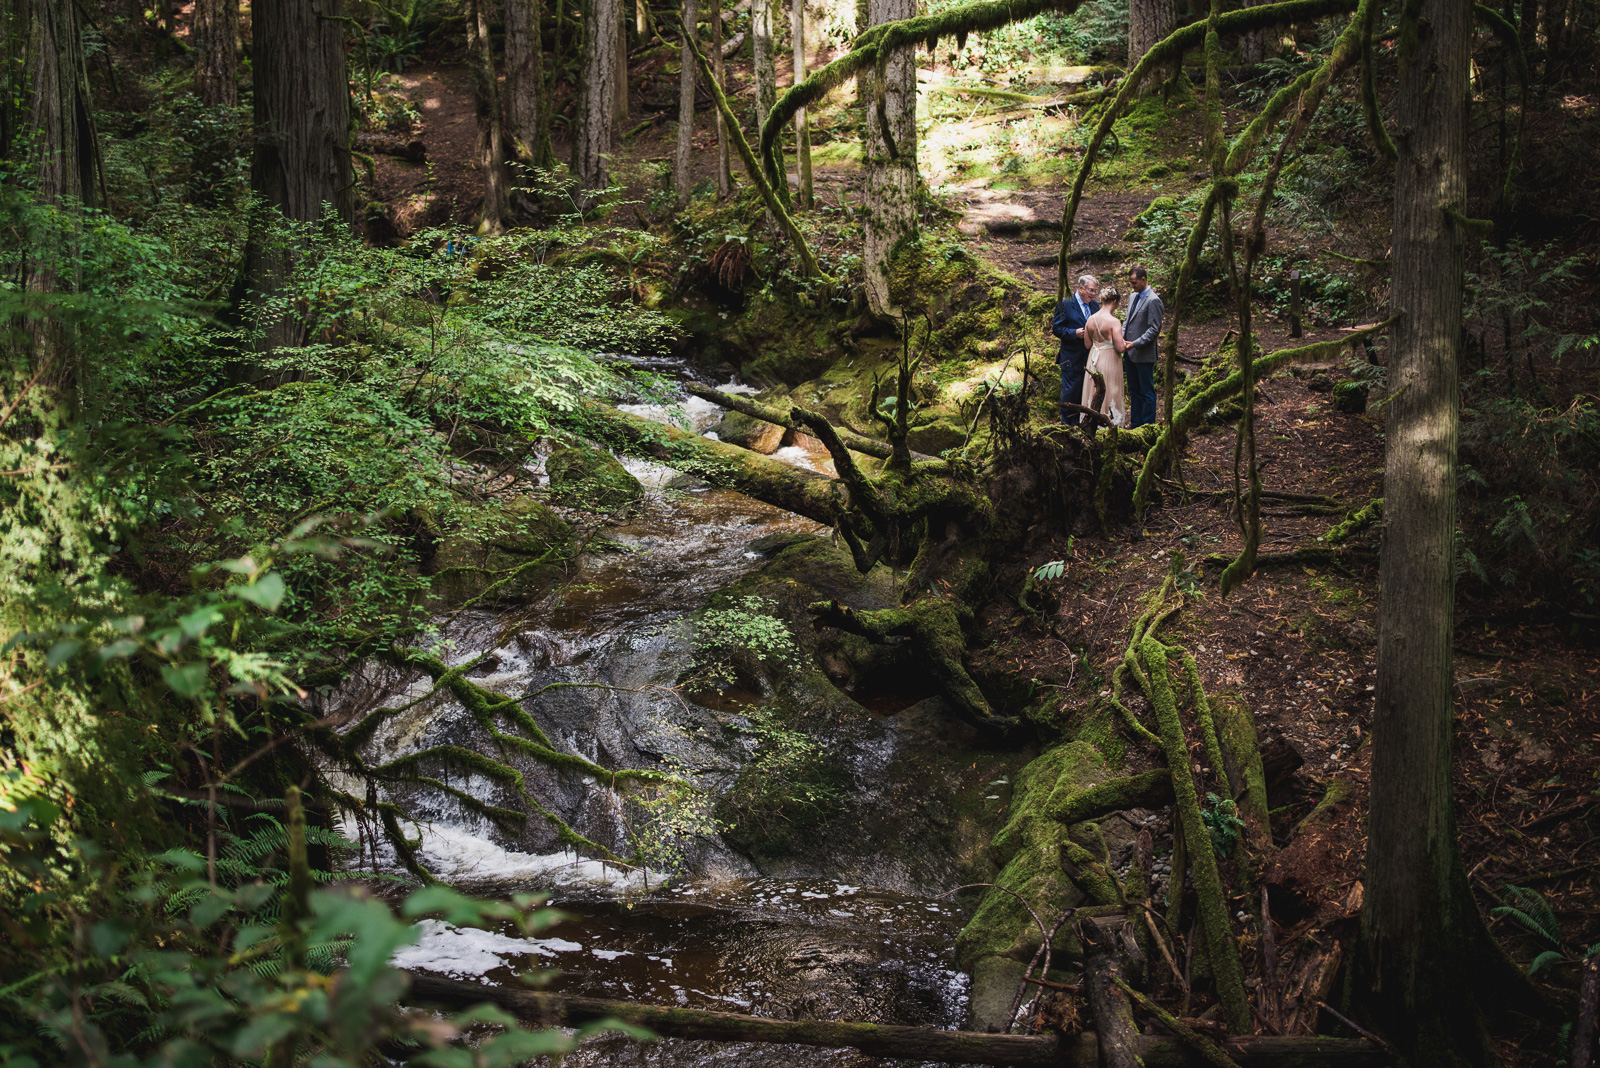 vancouver-island-wedding-photographers-cliff-gilker-park-smugglers-cove-elopement-3.jpg